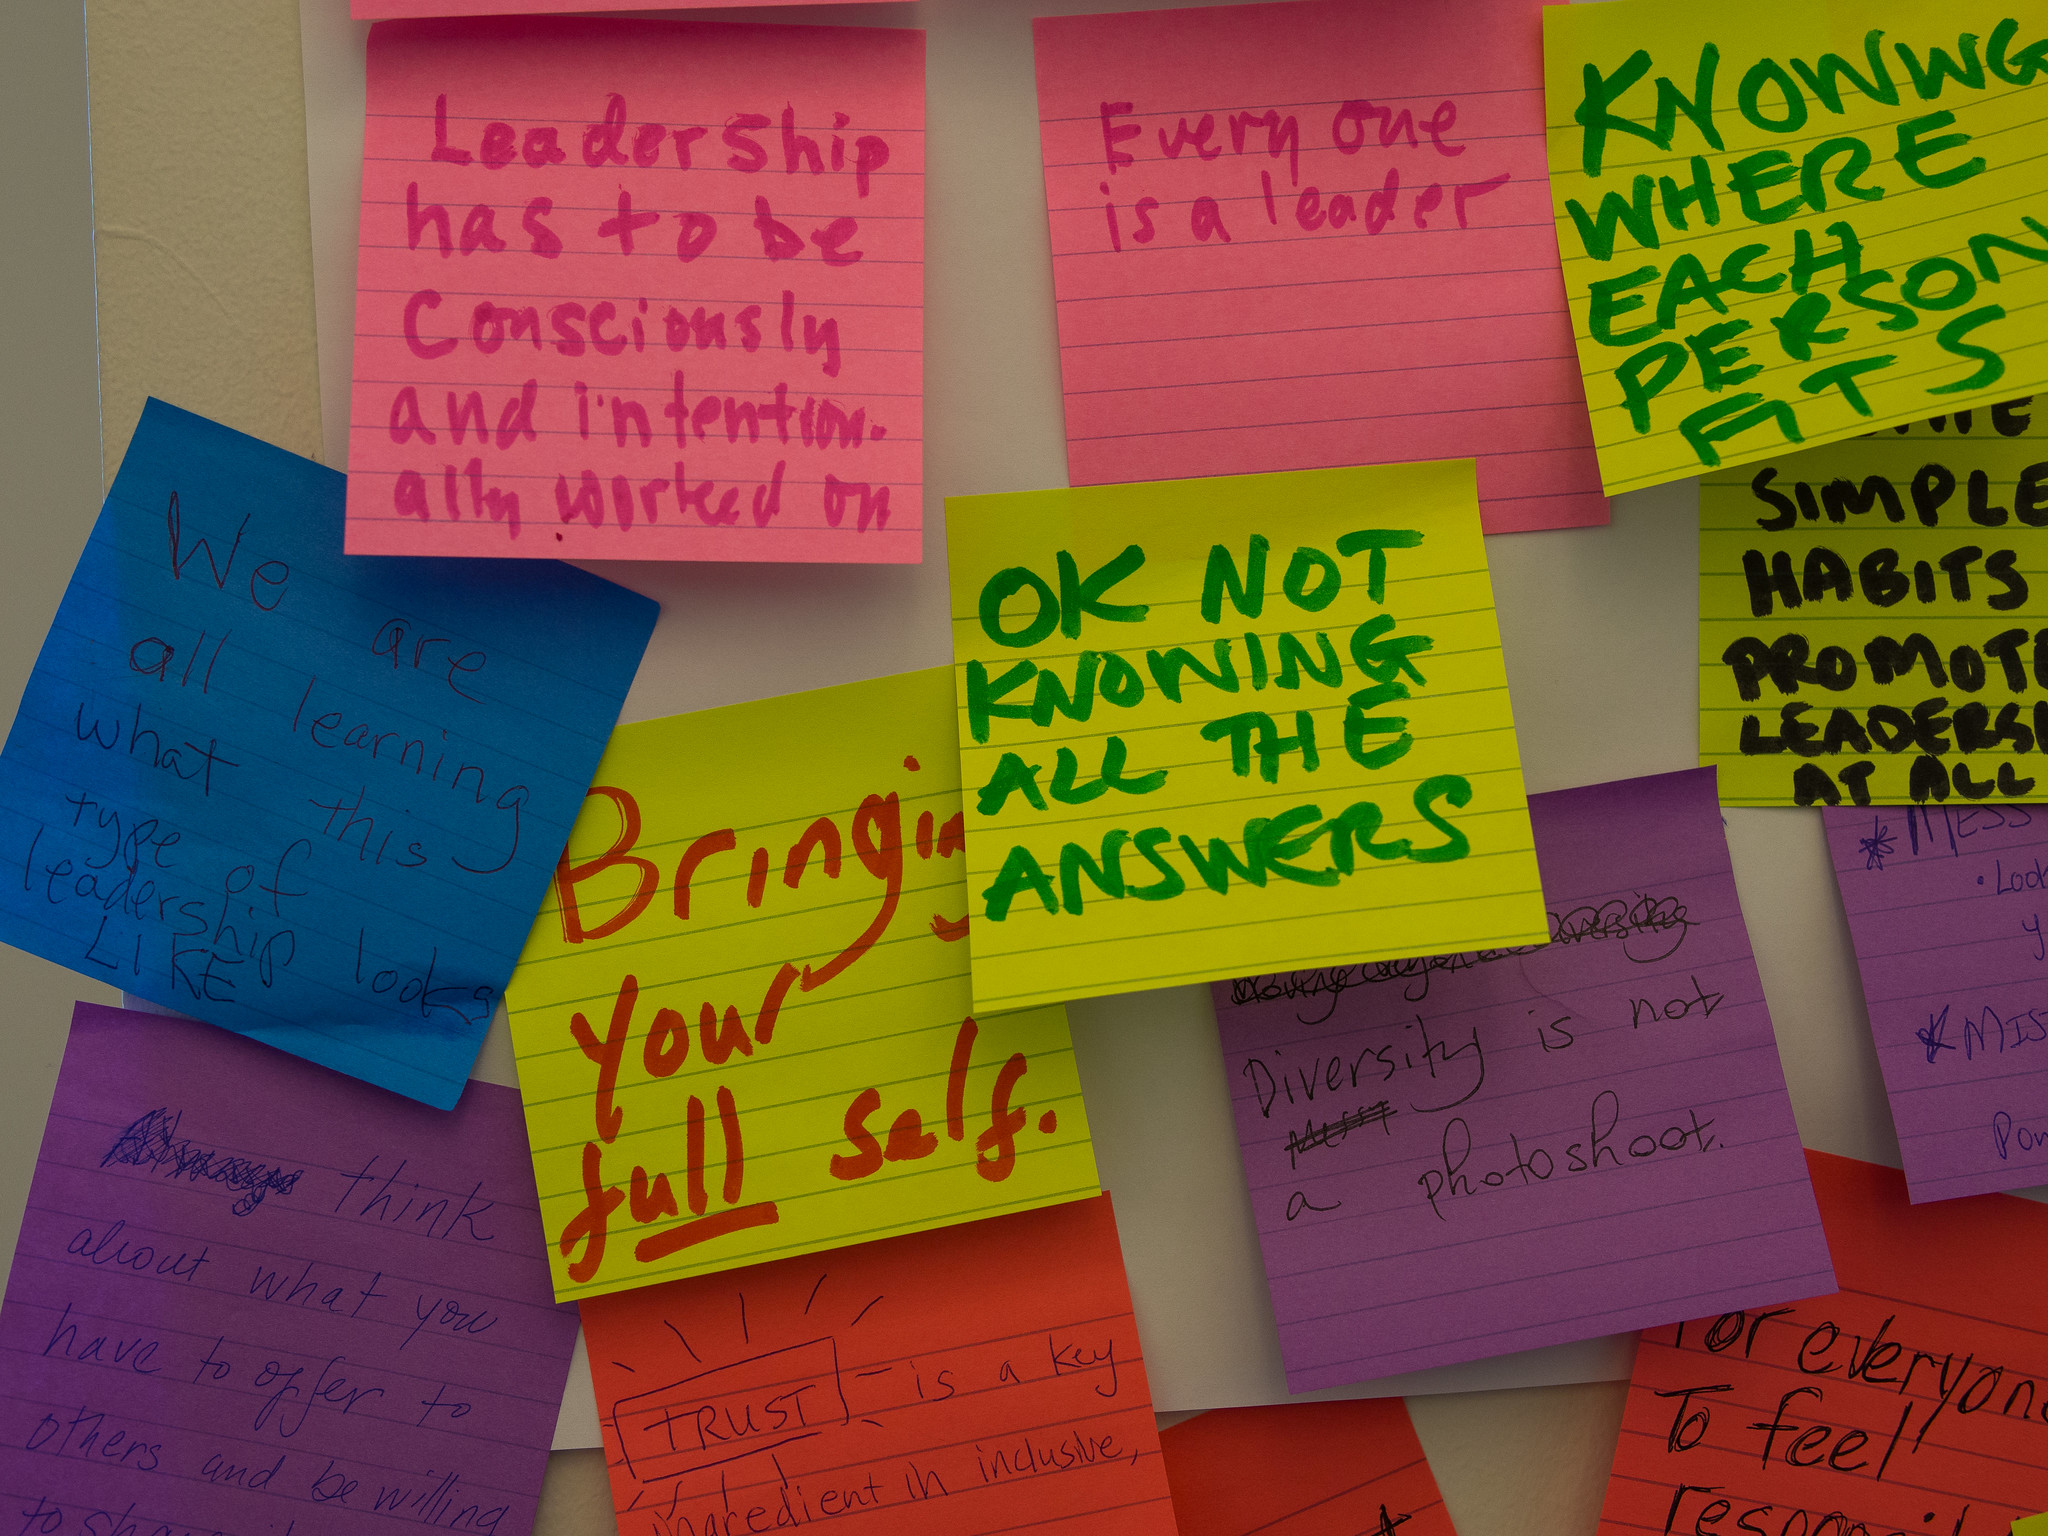 What Creates Inclusive, Networked, and Collective Leadership?